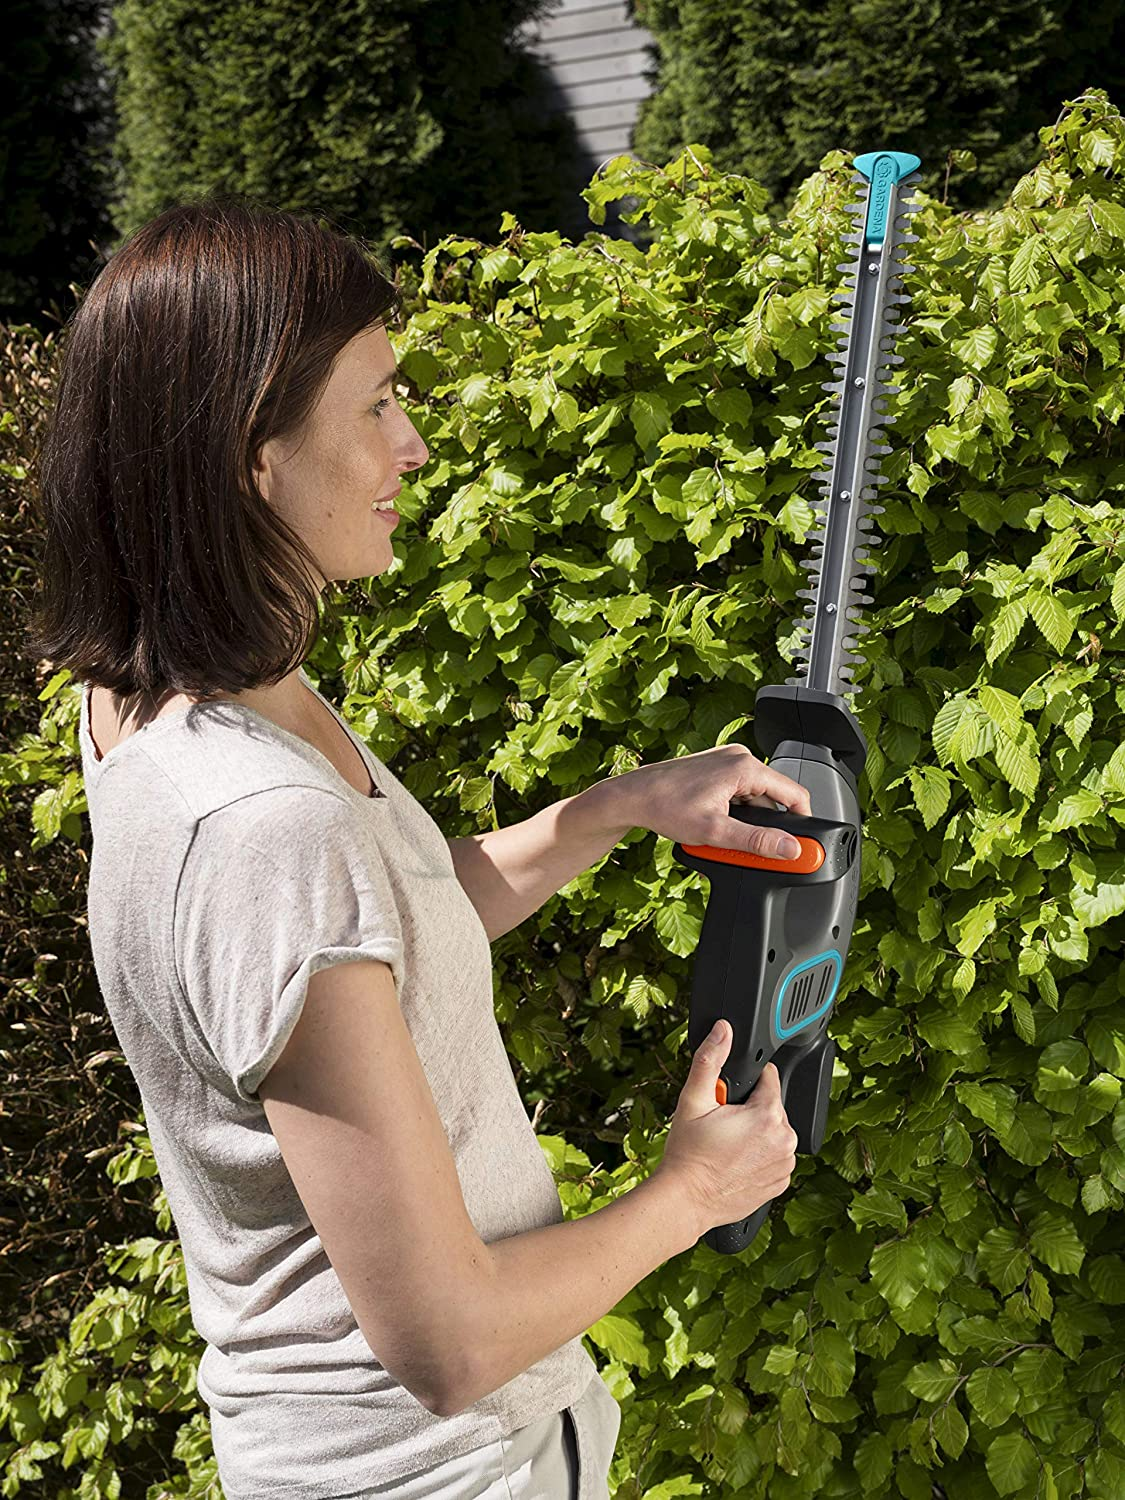 and impact protection ErgoTec handle 9836-28 GARDENA EasyCut Li Battery Hedge Trimmer: Hedge trimmer with high-performance 14.4 V battery